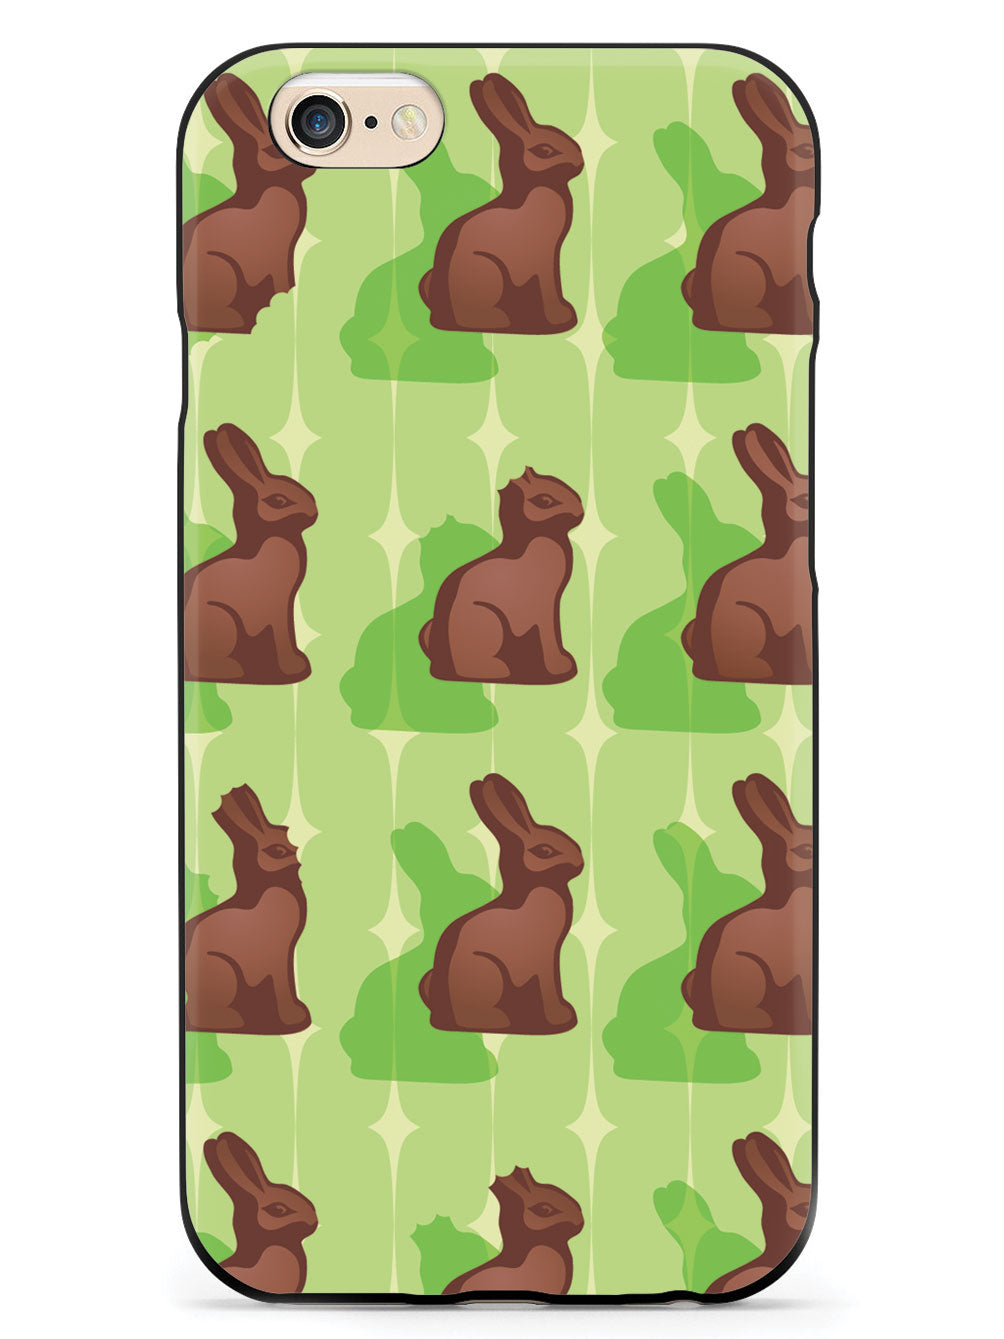 Green Chocolate Bunny - Black Case